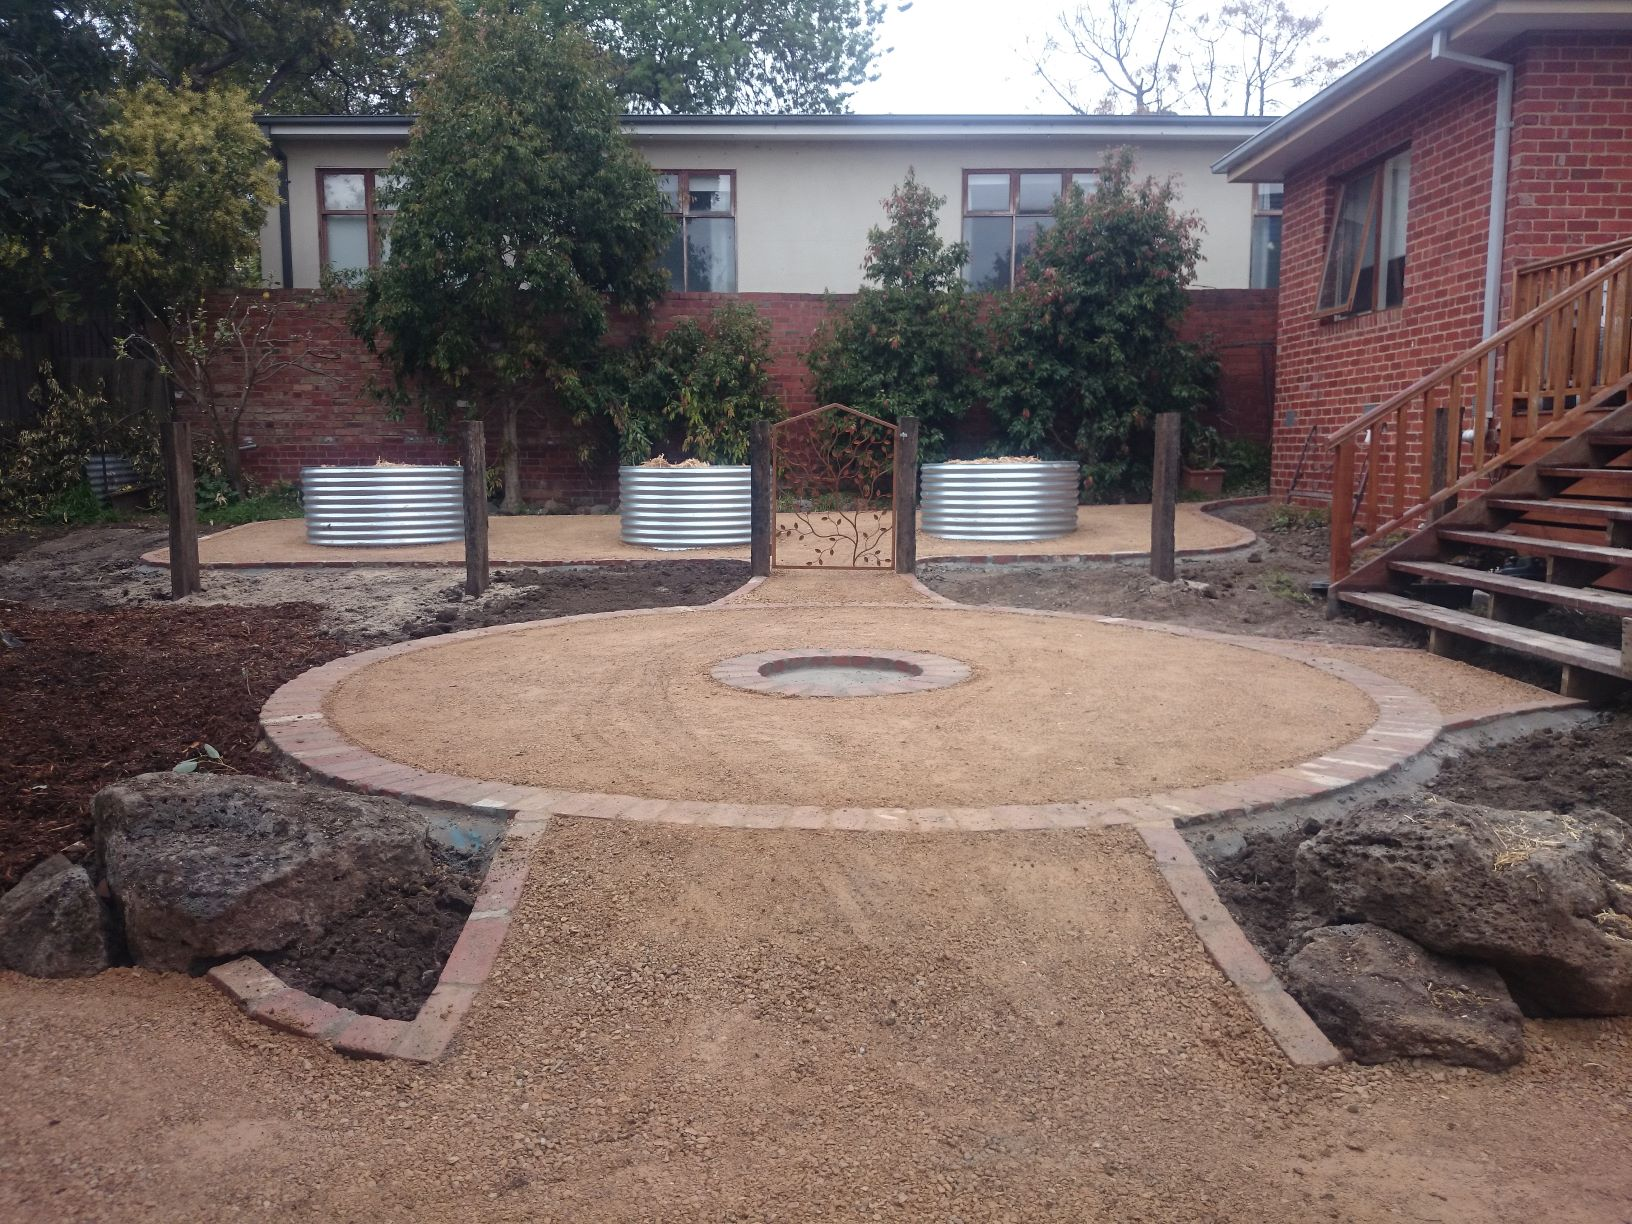 Second hand Red Bricks, Second hand Red Brick edging, Second hand Red Brick edging Rosanna, Compacted Sandstone path Rosanna, Compacted Sandstone